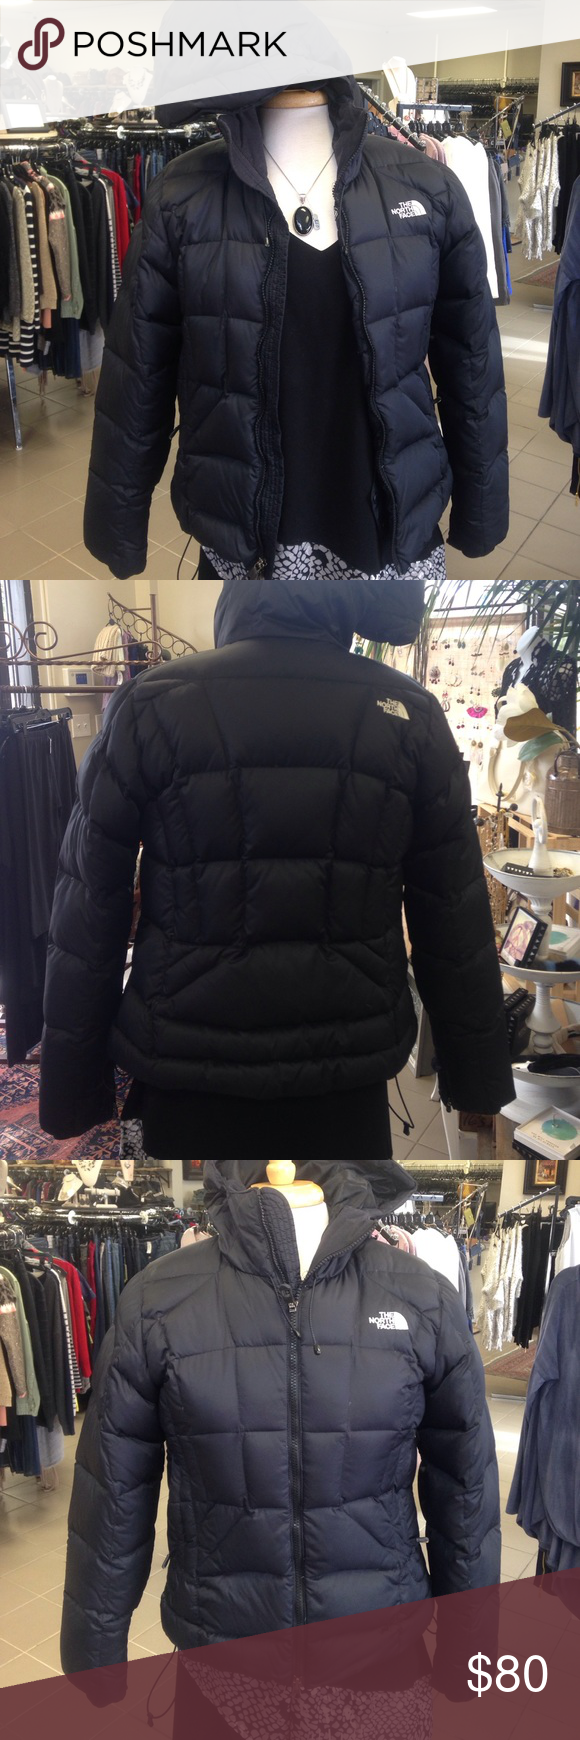 North face puffer hooded coat North face down filled coat